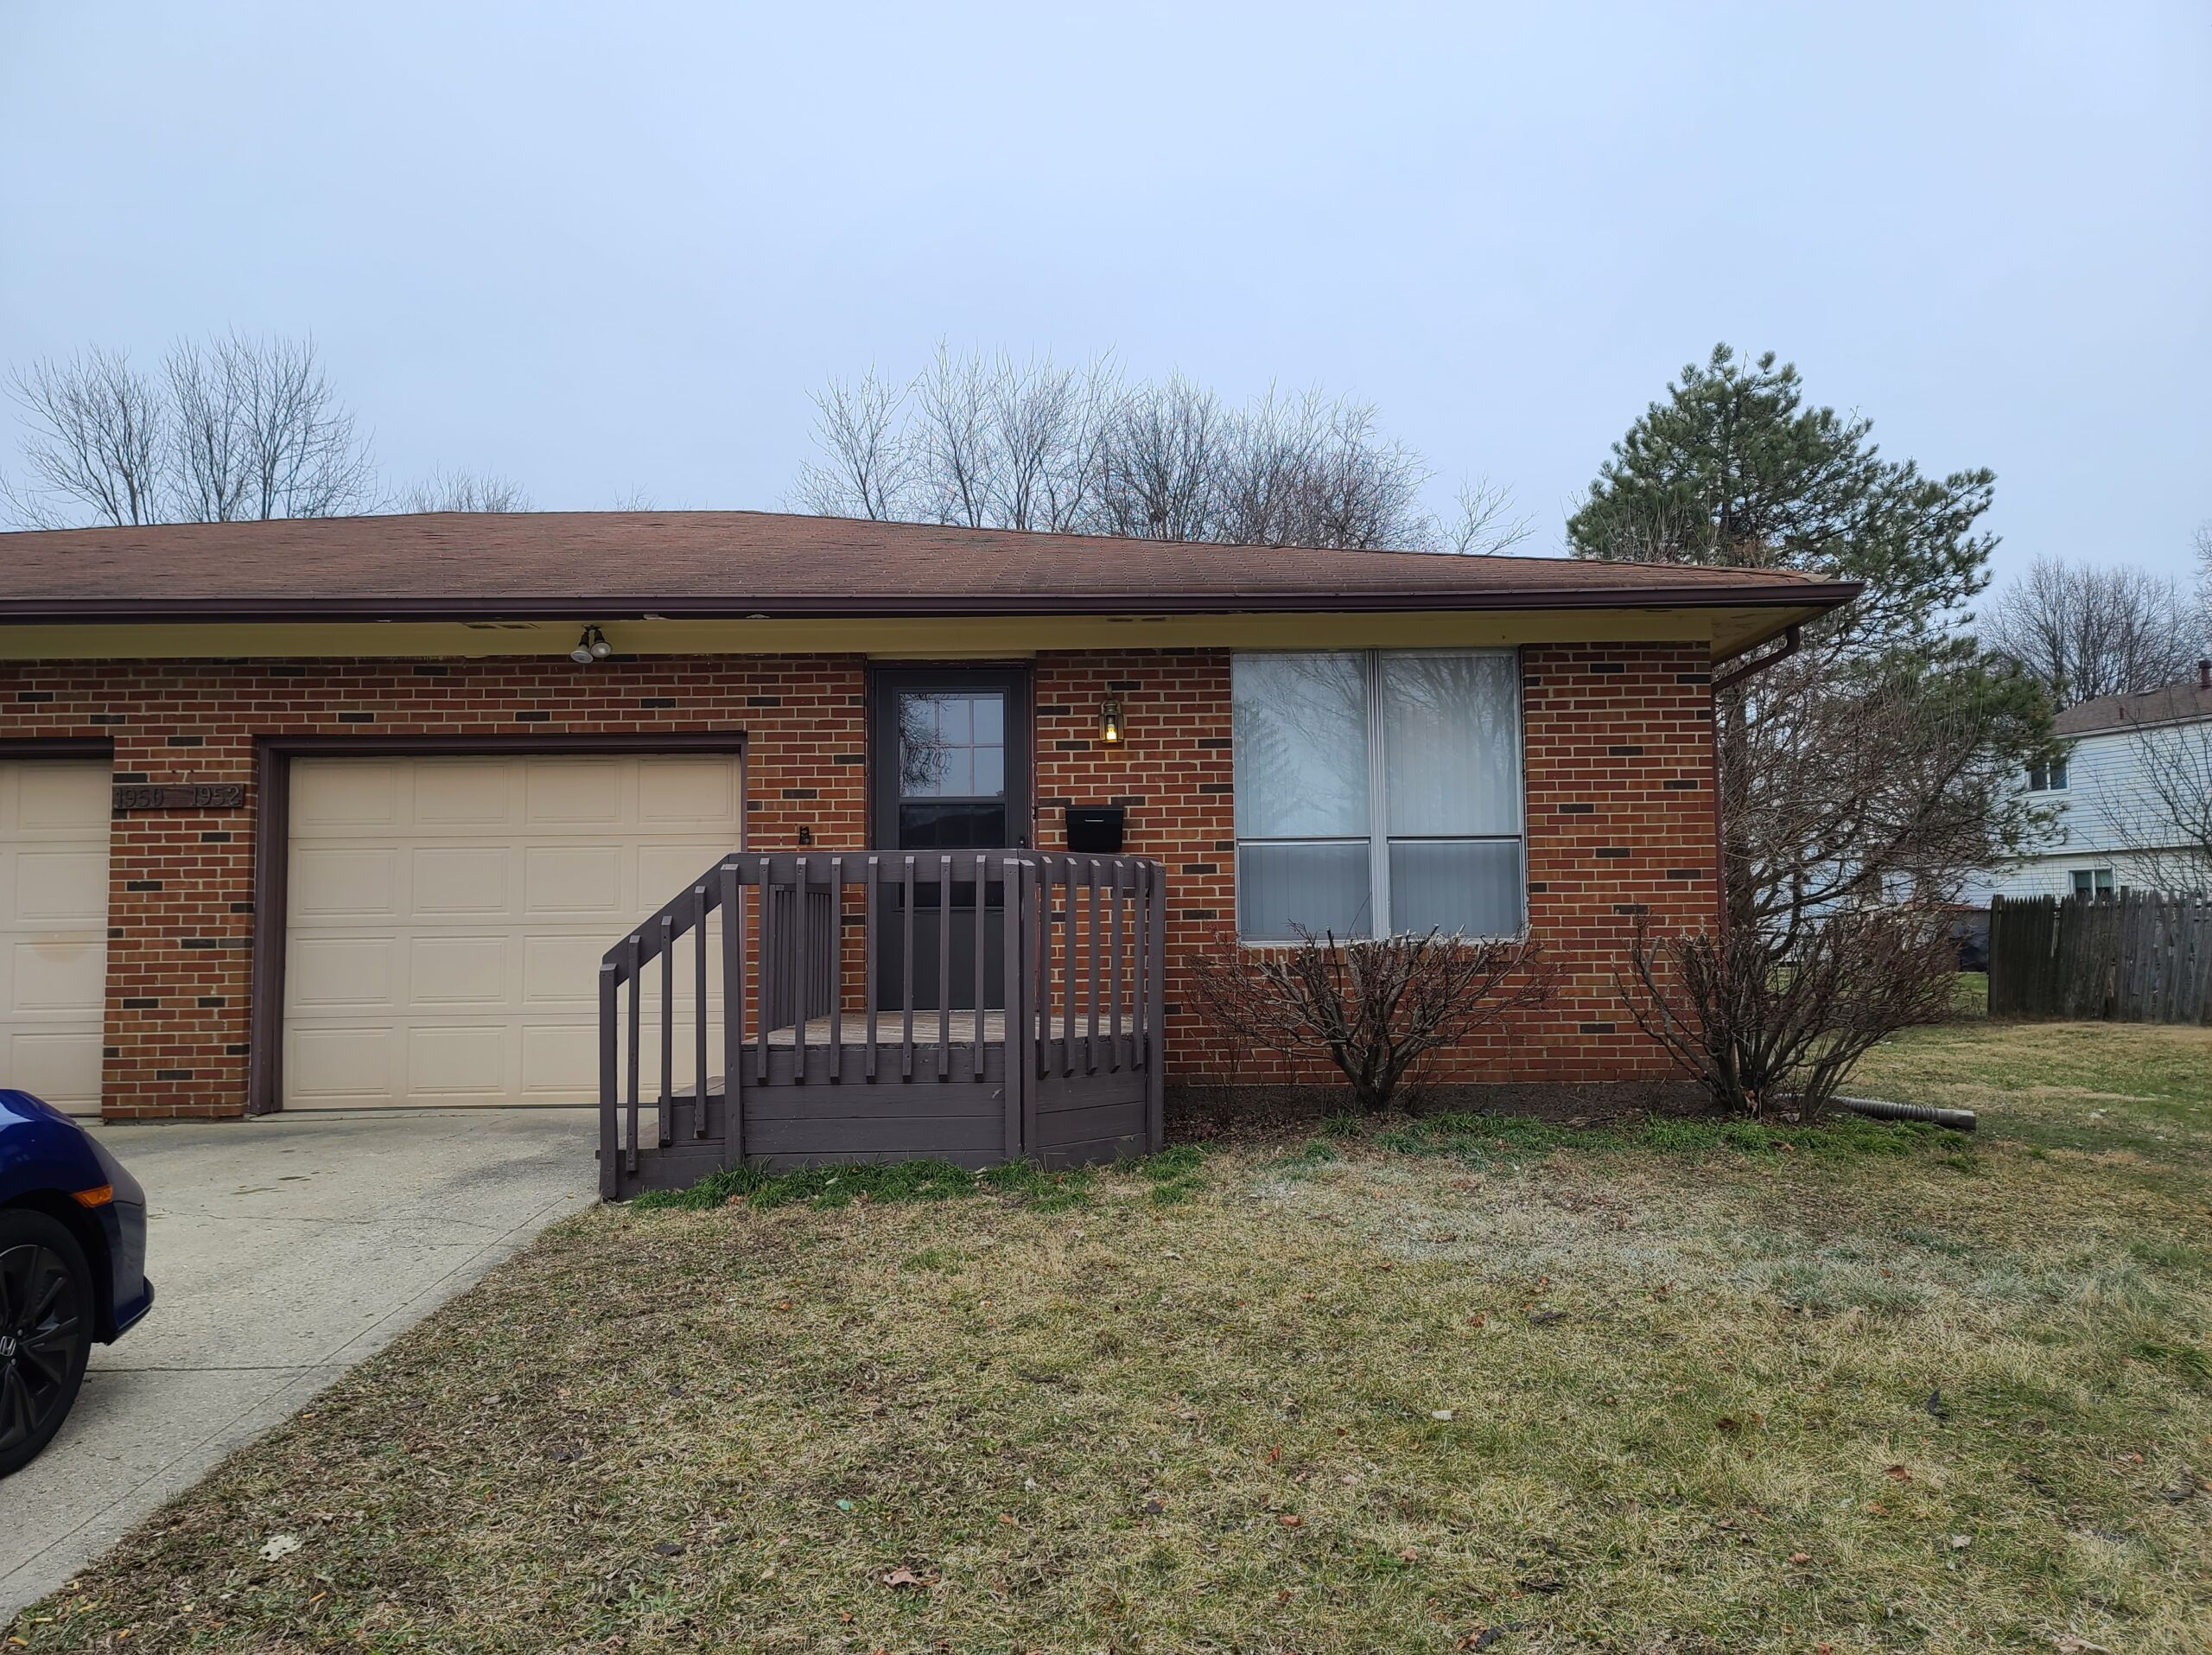 1952 Hampstead Dr., Columbus OH 43229